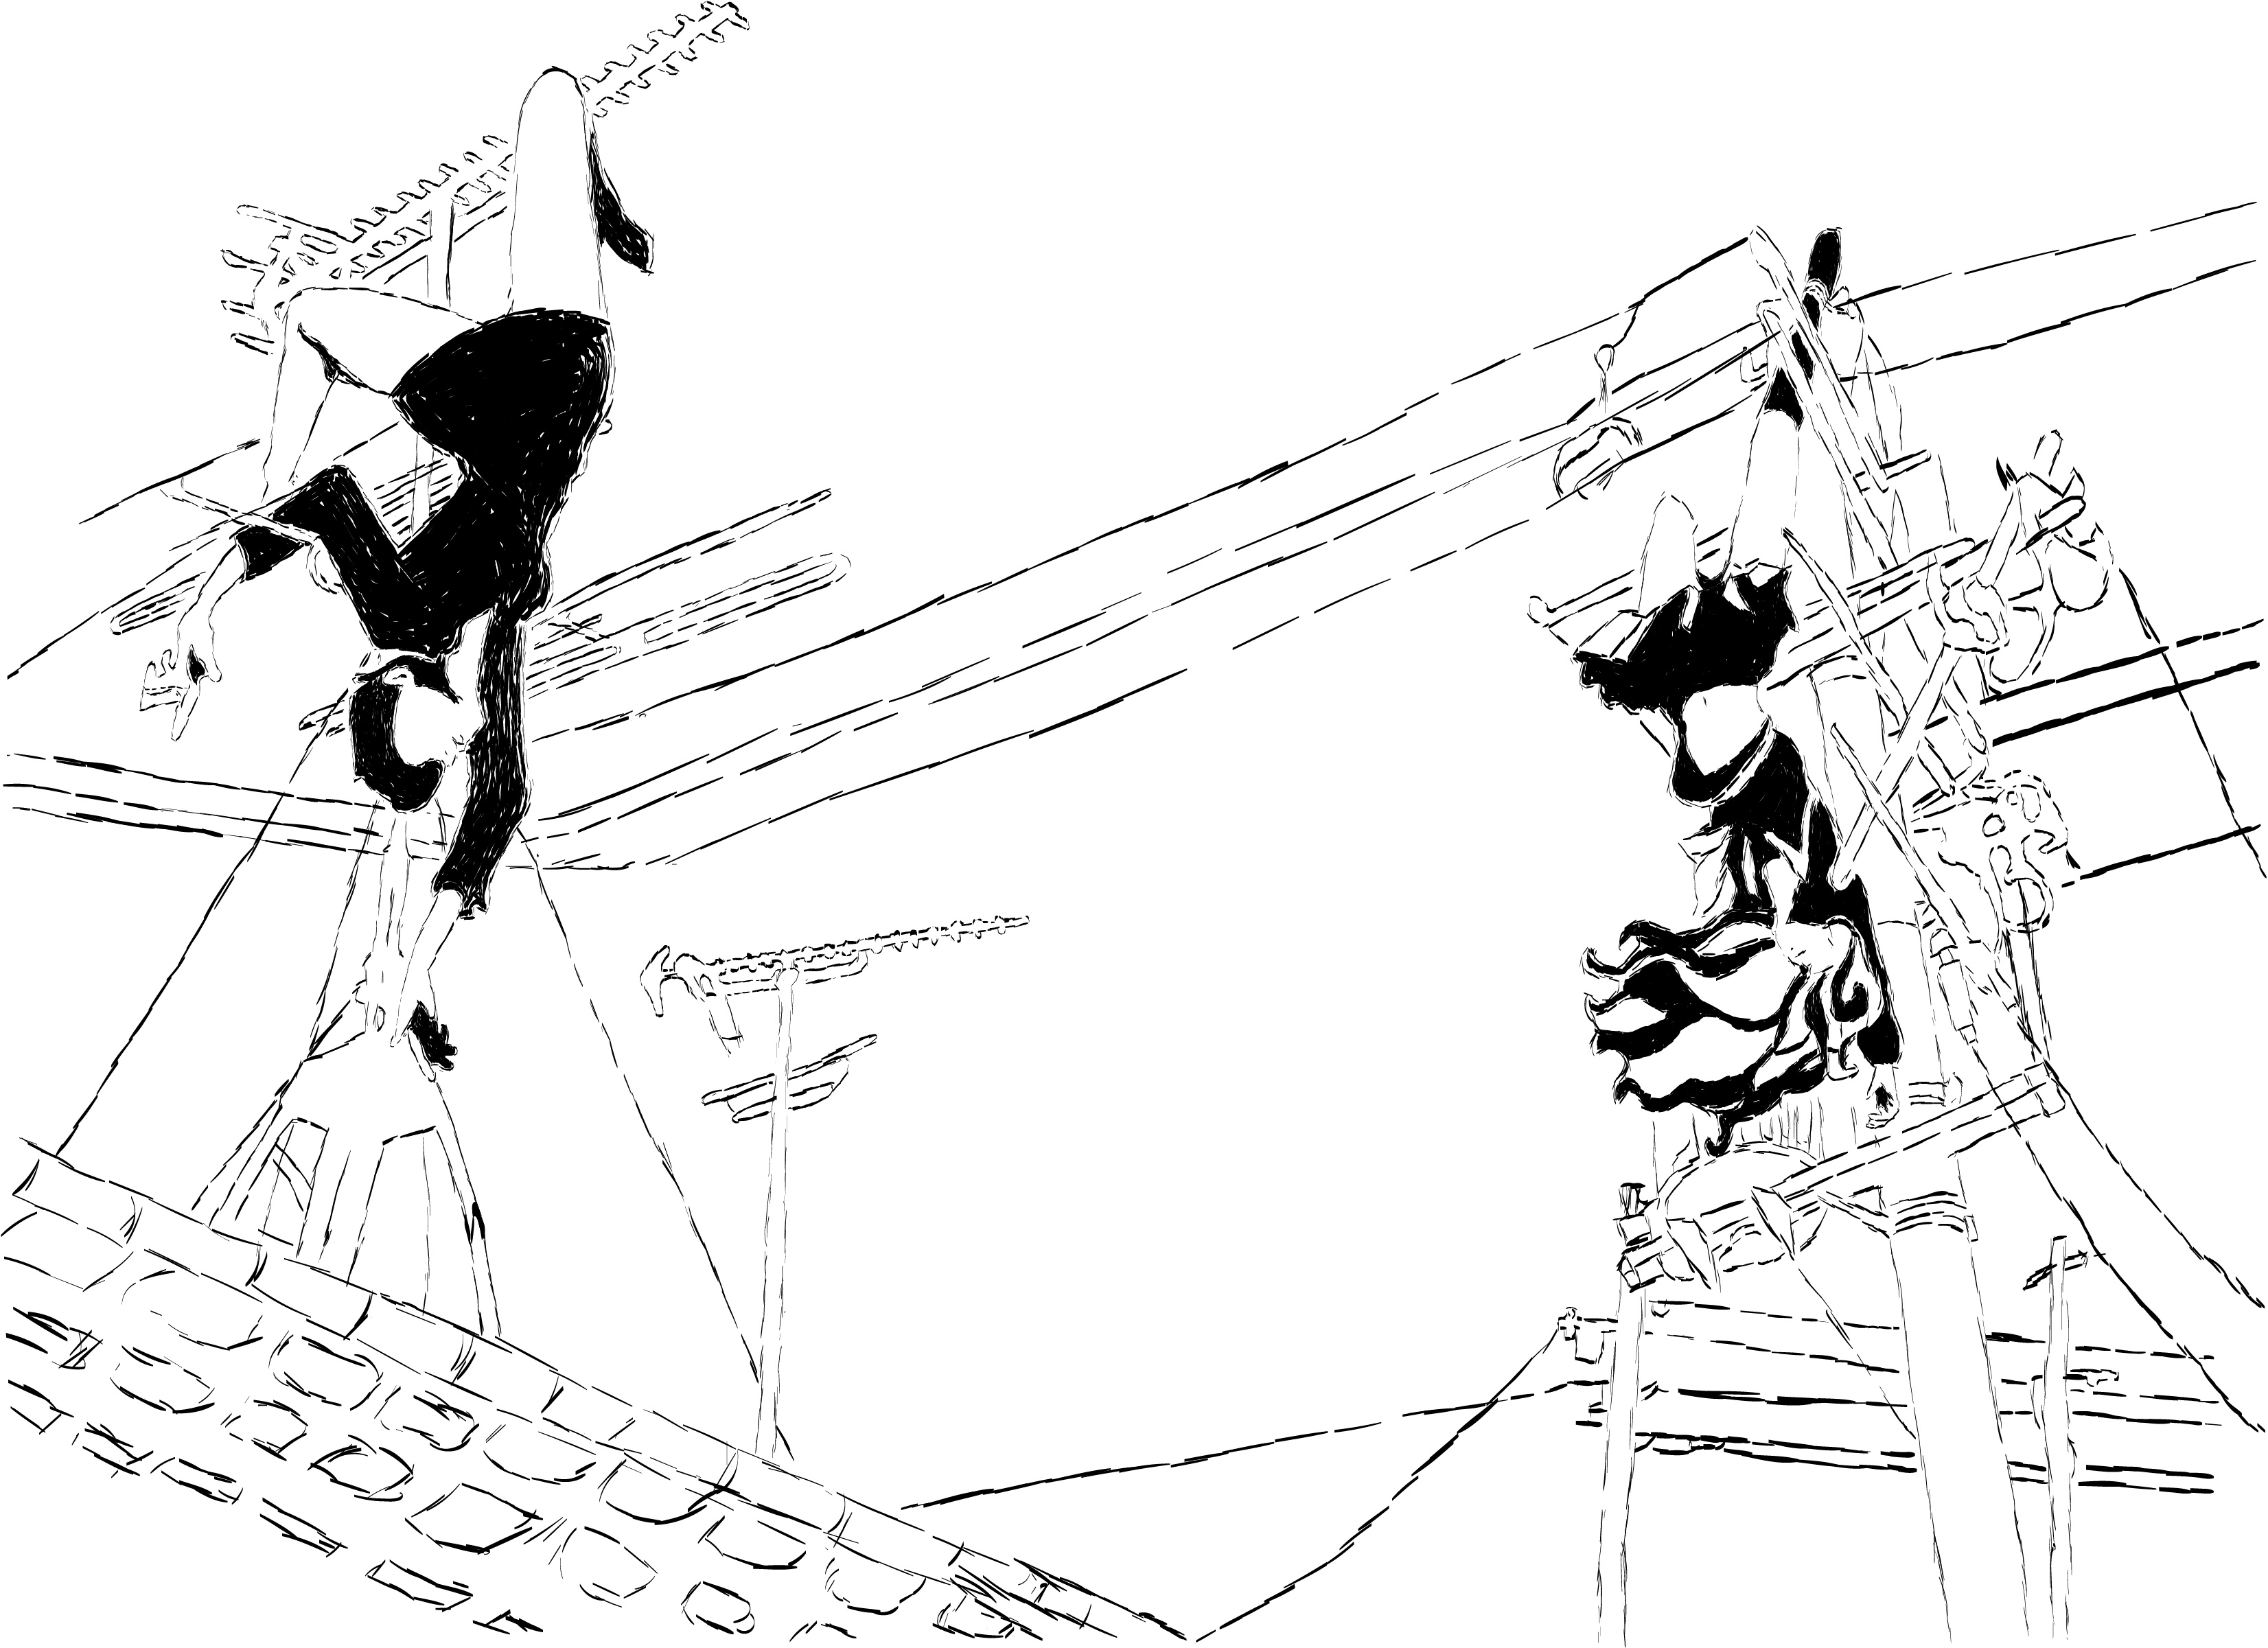 Two women hanging from wires